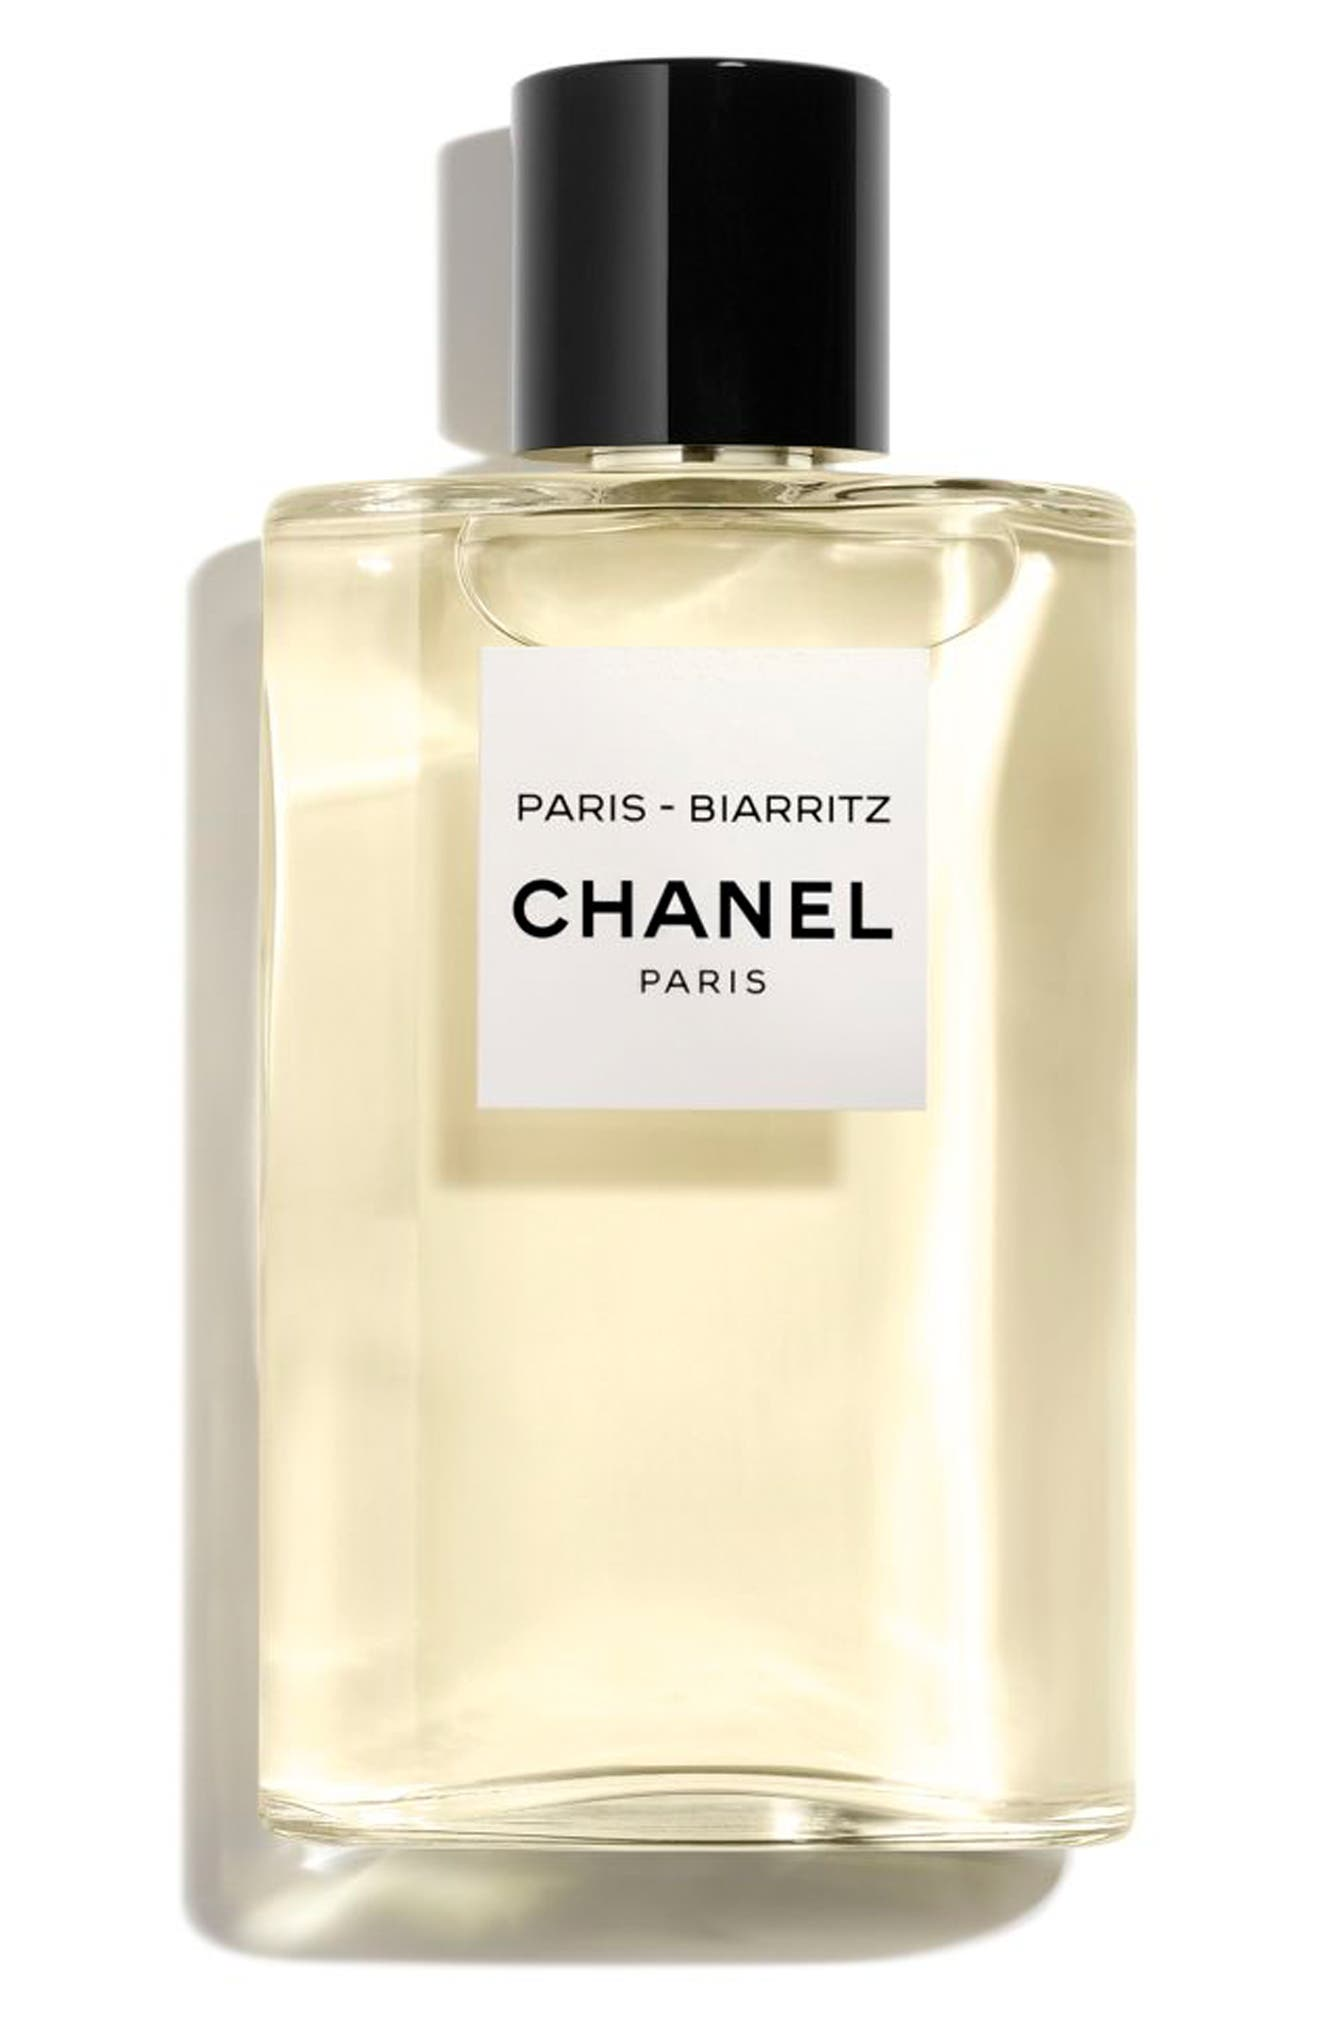 CHANEL LES EAUX DE CHANEL PARIS-BIARRITZ Eau de Toilette, Main, color, NO COLOR